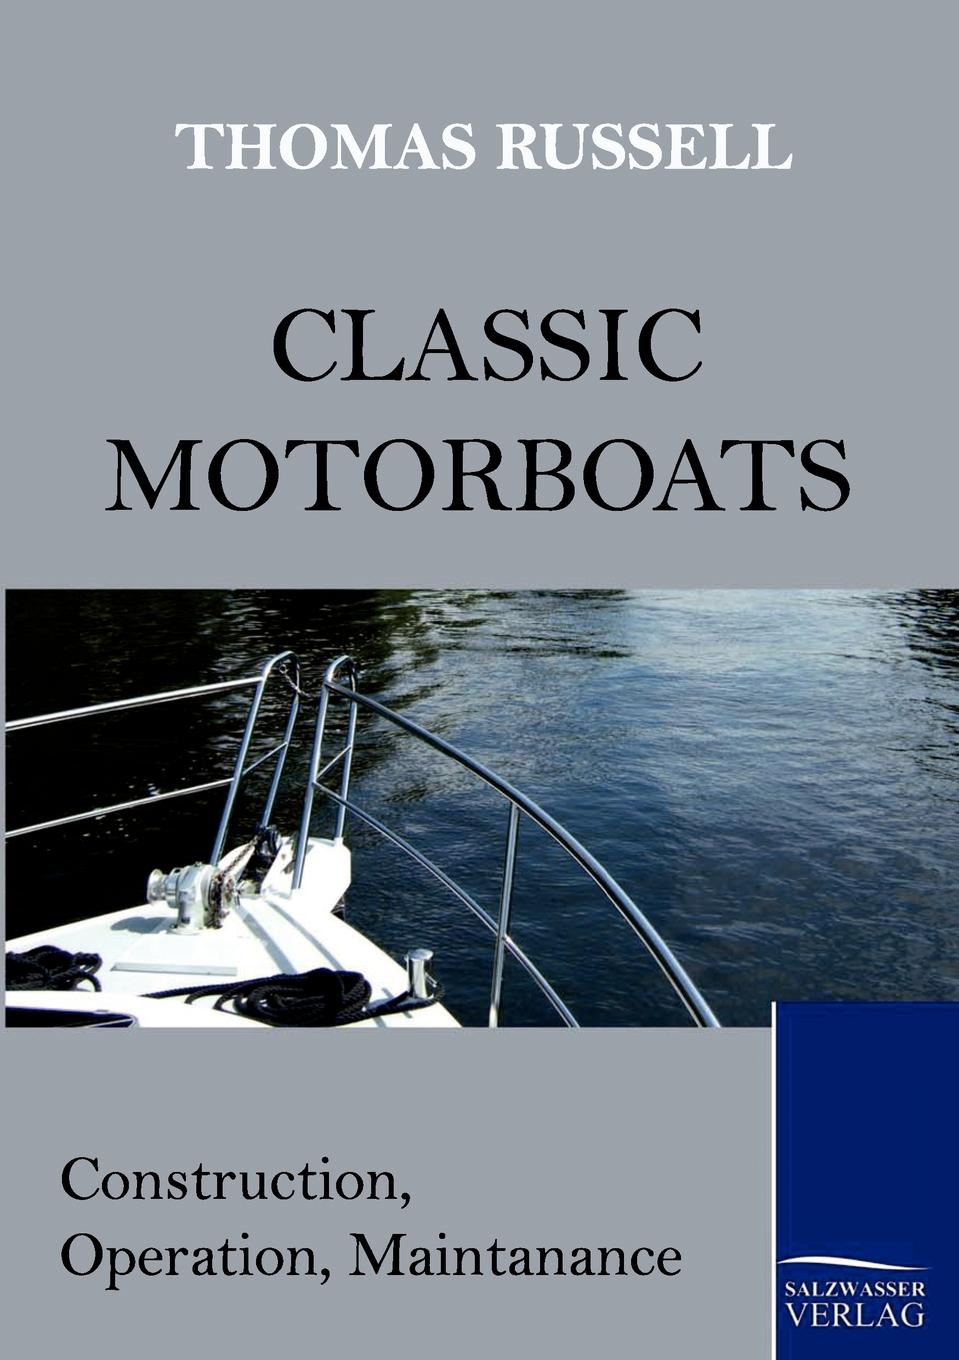 Thomas Russell Classic Motorboats